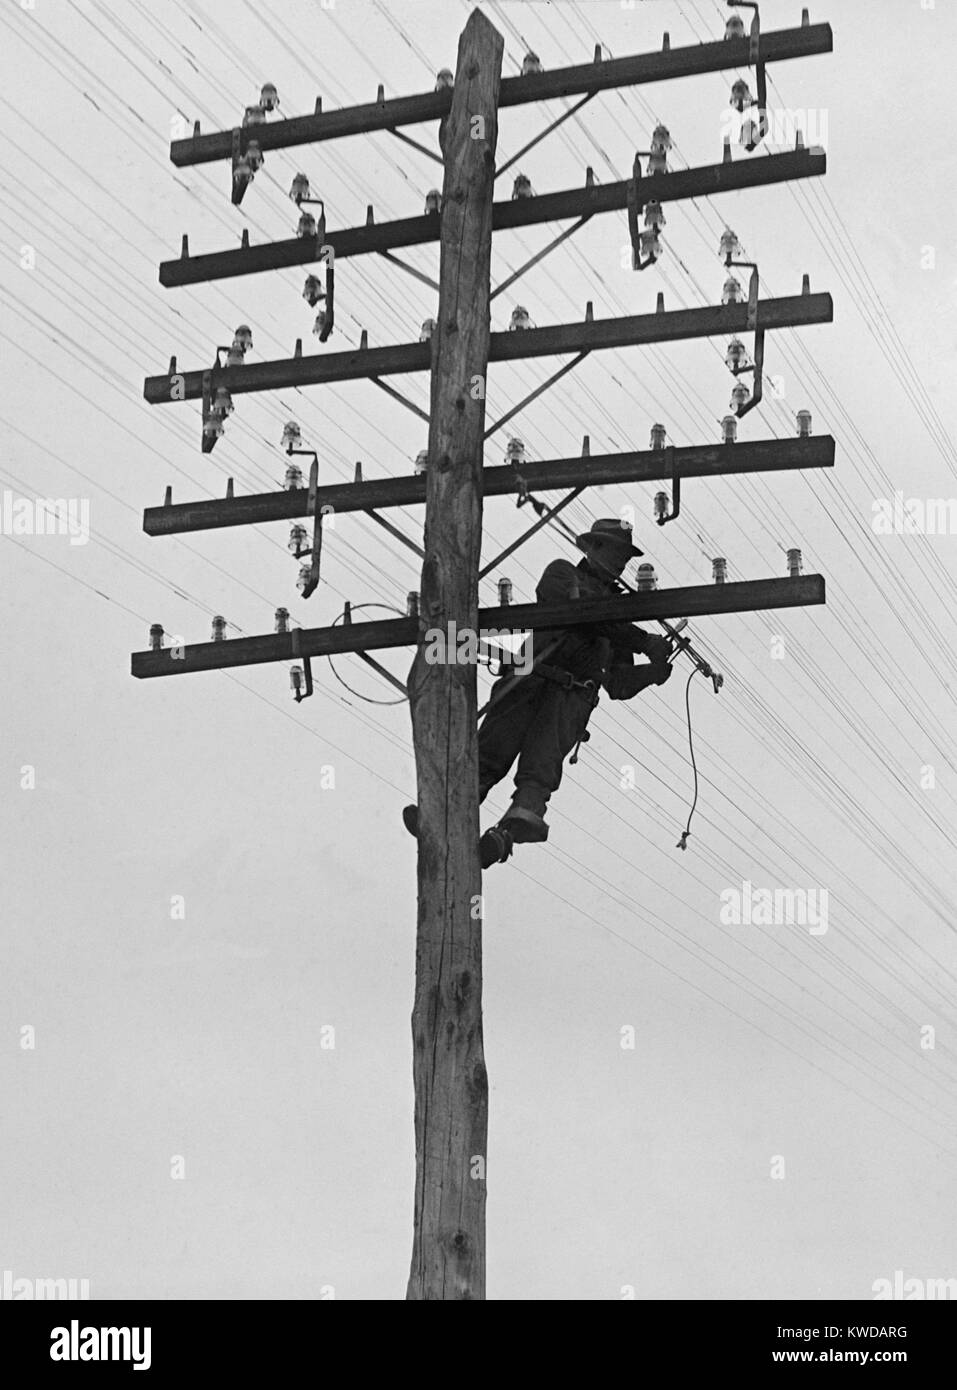 Chesapeake and Potomac Telephone Company lineman at work in 1929. Installation and maintenance of utility lines - Stock Image